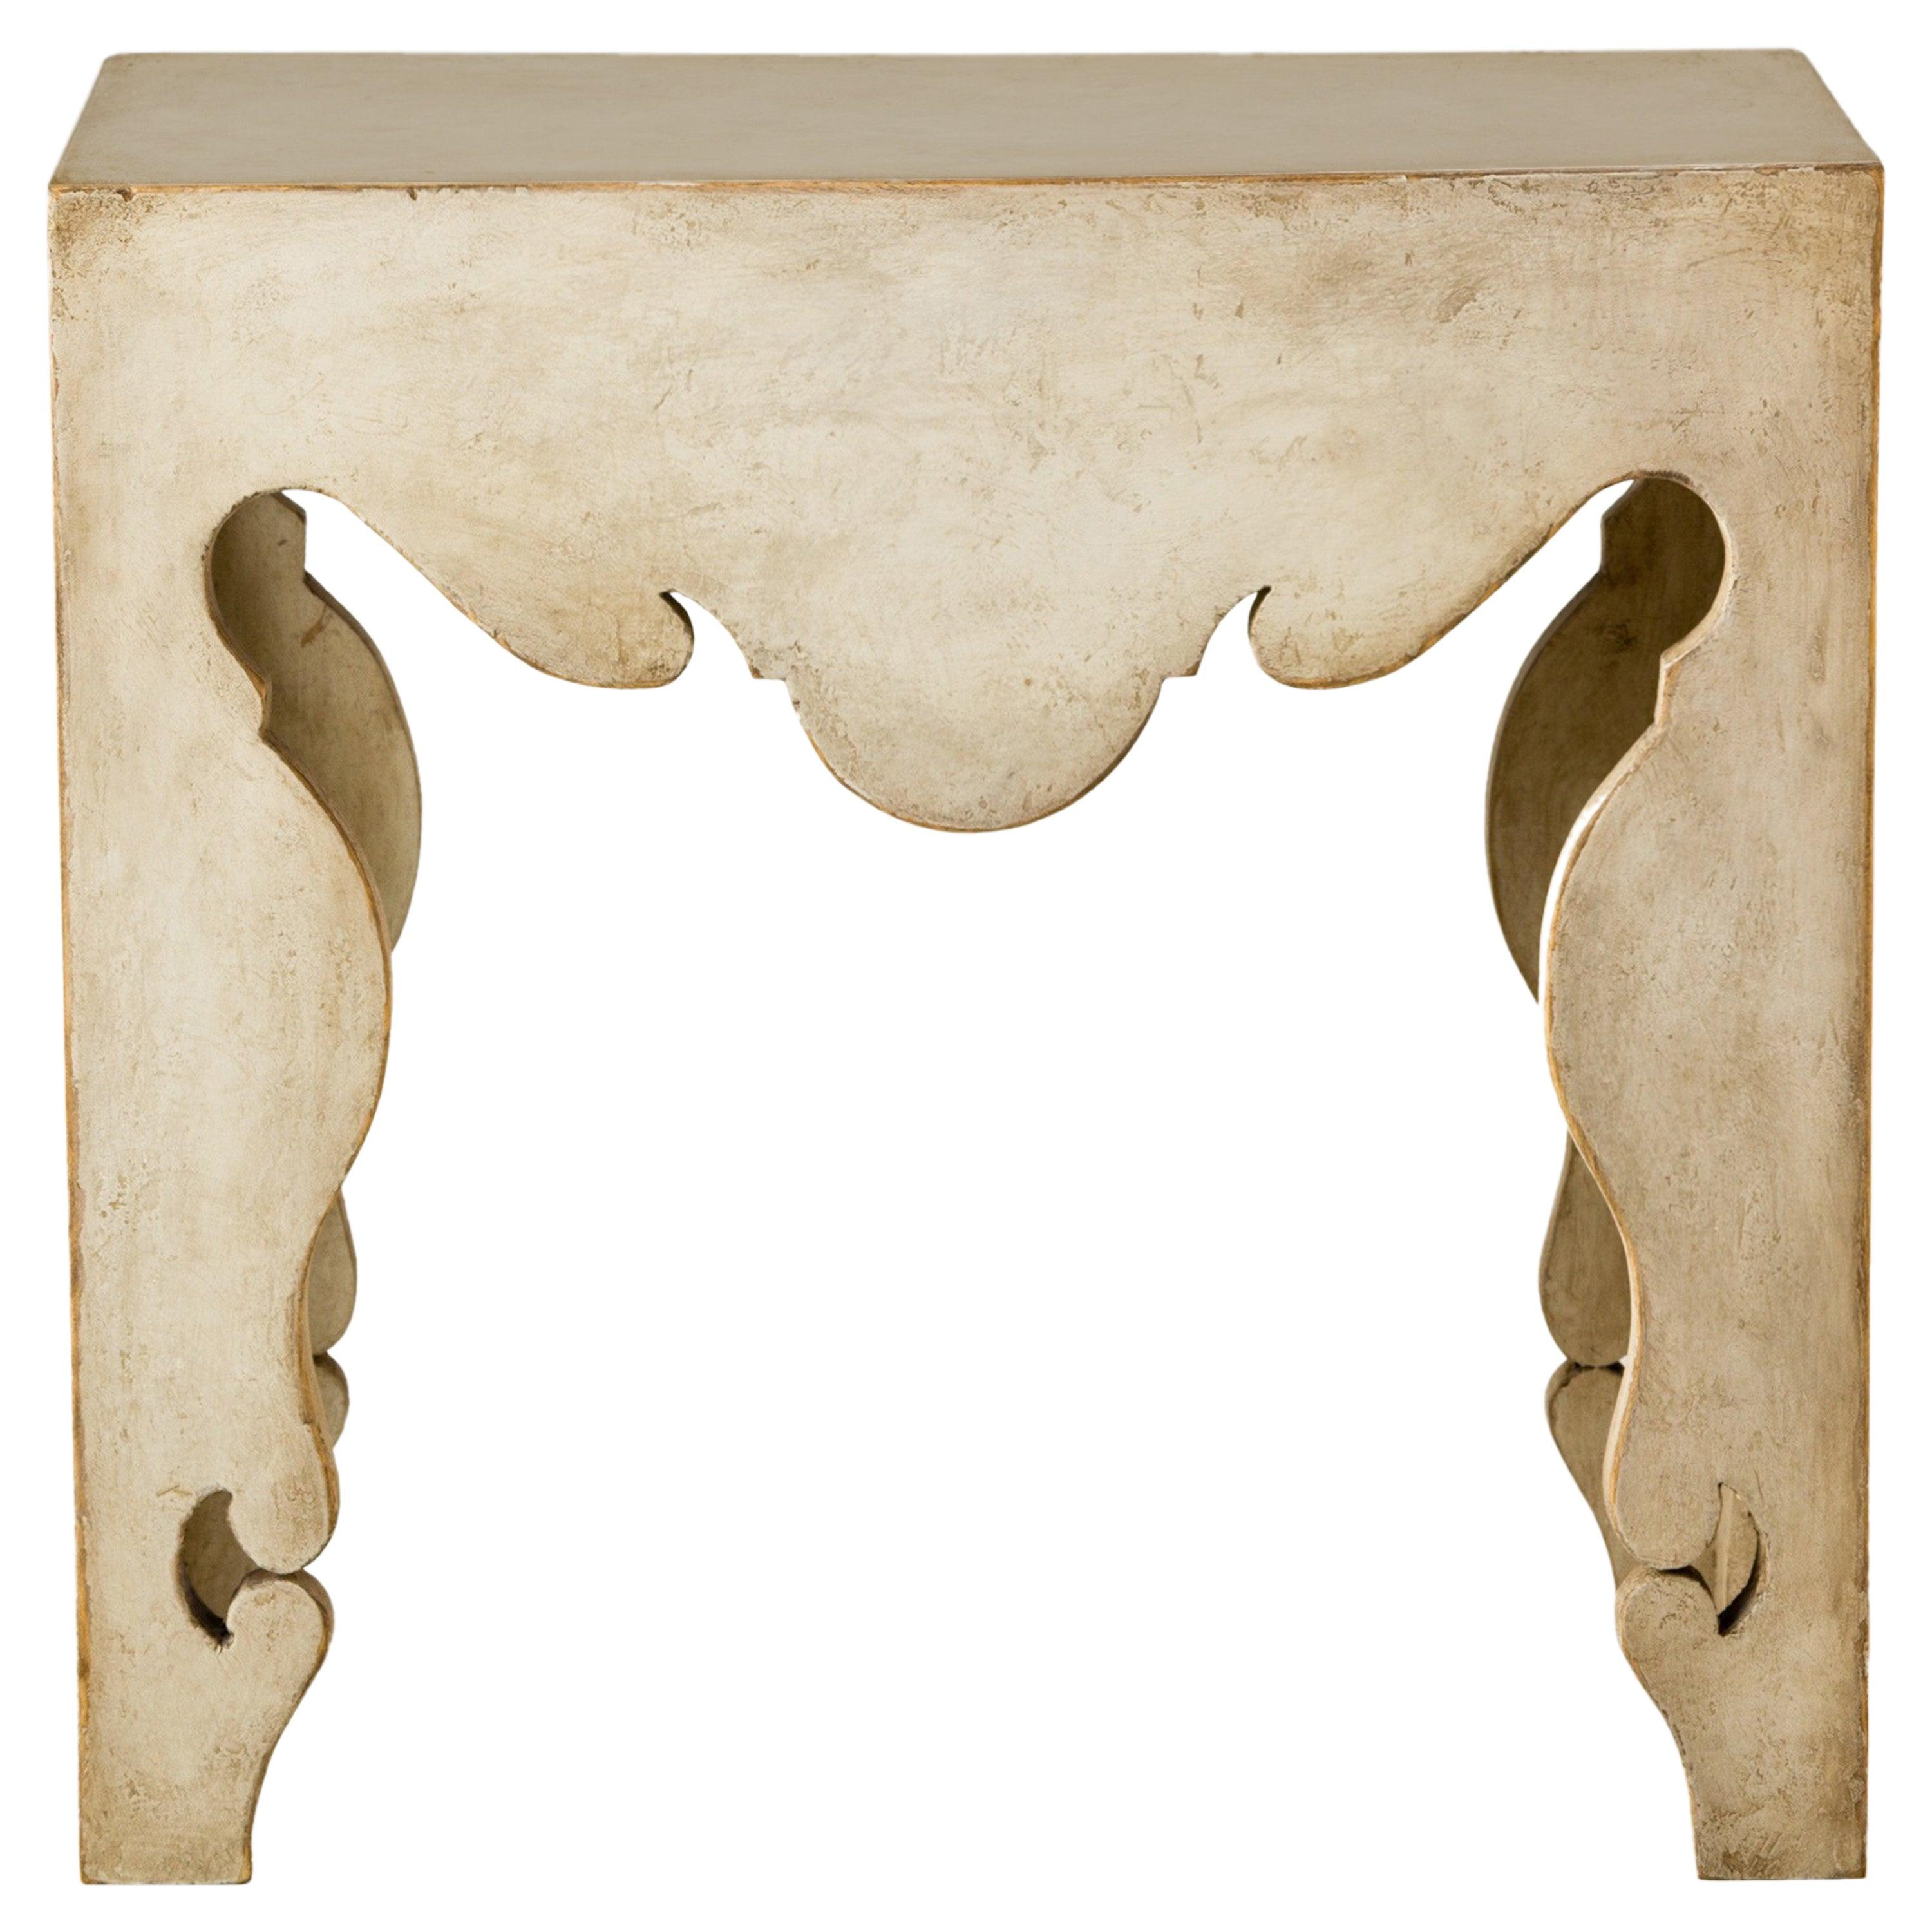 Contemporary Martini Side Table with Painted Swedish Finish